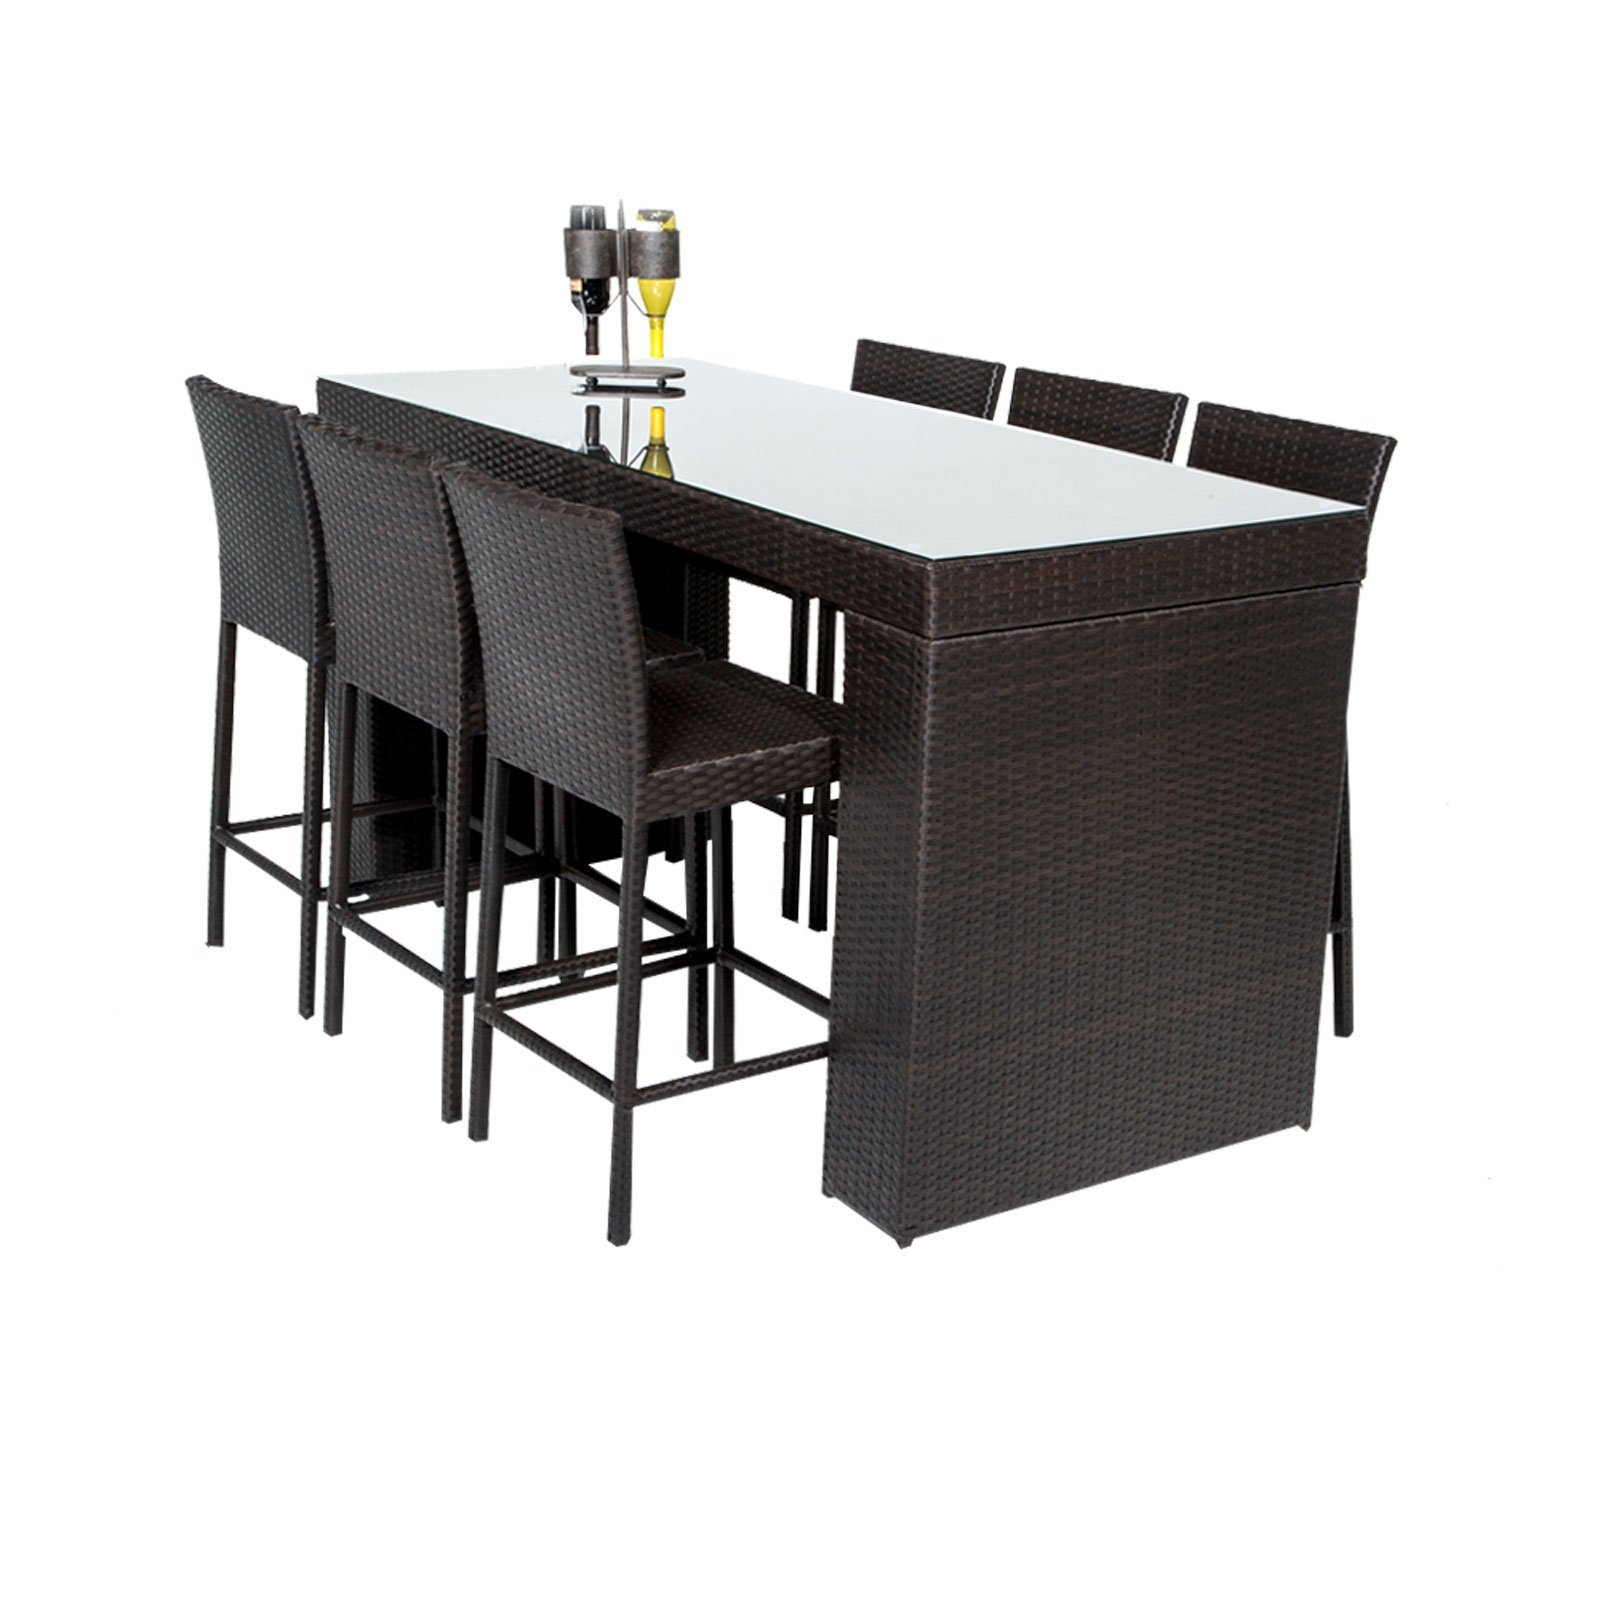 TK Classics BARTABLE-WITHBACK-6 Napa 7 Piece Bar Table Set with Barstools Outdoor Wicker Patio Furniture